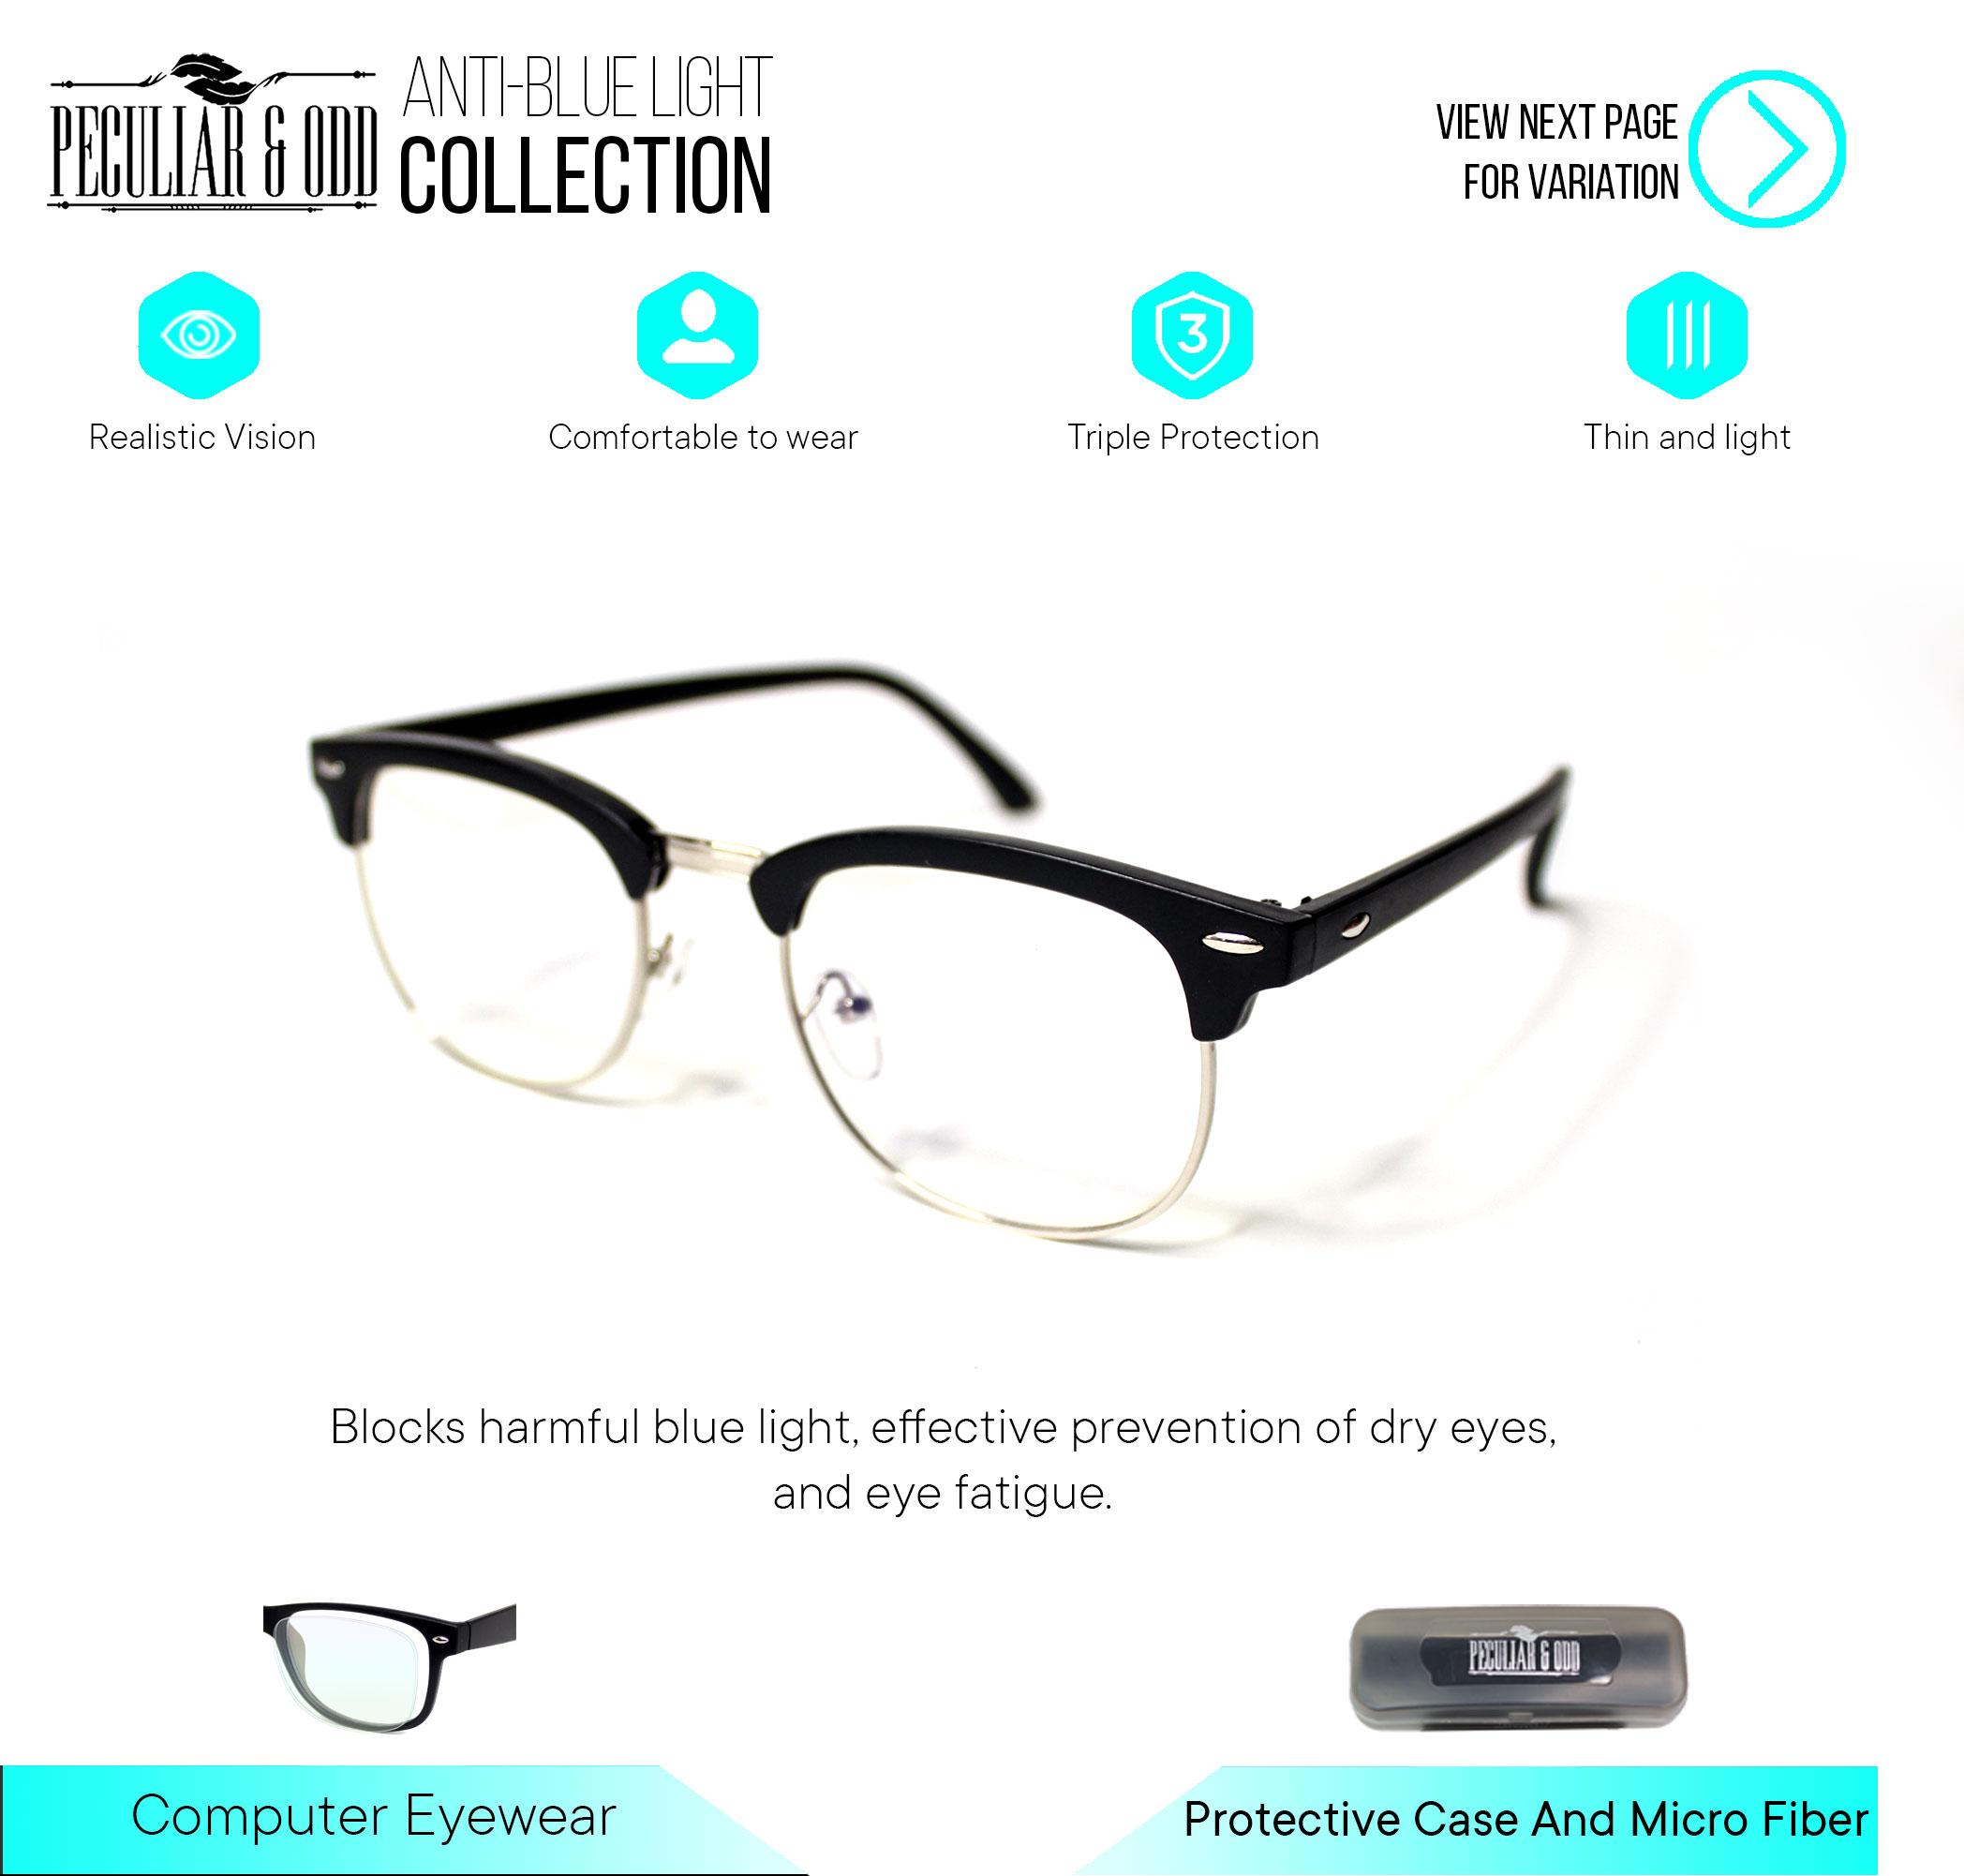 Peculiar Clubmaster Eyeglass 1365_livid Unisex Computer Eyeglasses Anti Radiation / Gaming / Gadget / Computer Replaceable Lens Optical Frame Blue Lens_new By Salimars Trading.